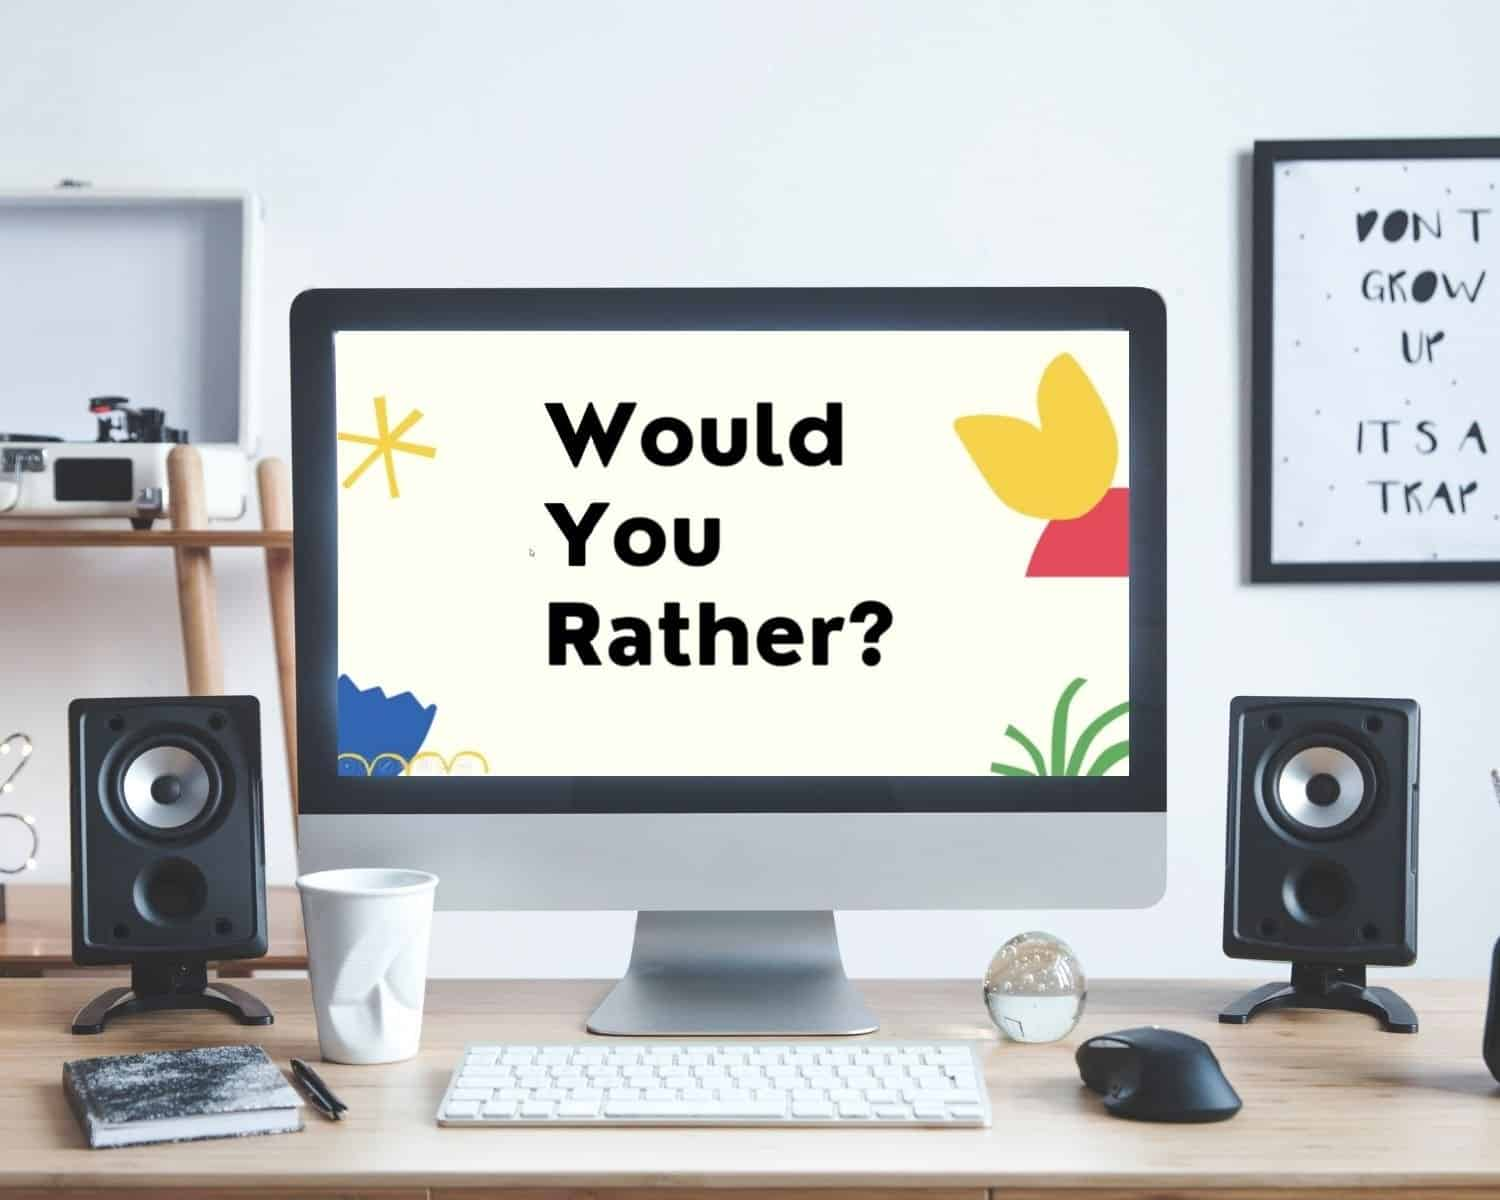 Would You Rather virtual game is shown on a computer sitting on a desk with an art print behind it